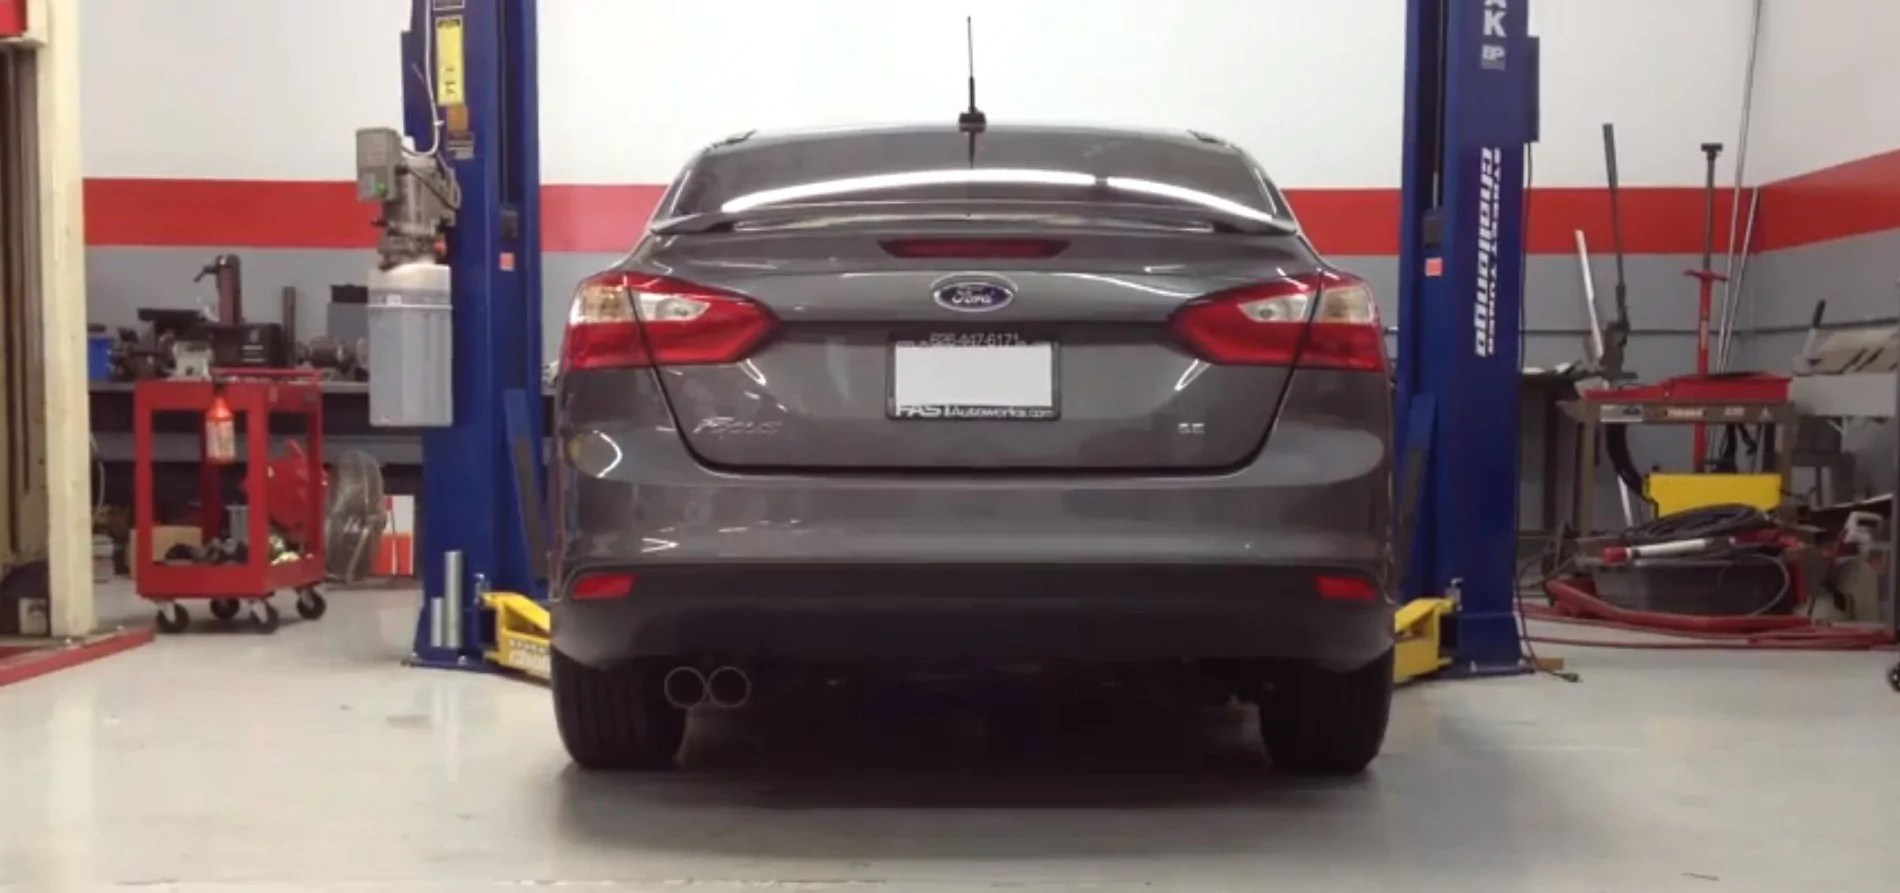 fswerks stainless steel race exhaust system ford focus tivct 2 0l 2012 2018 sedan